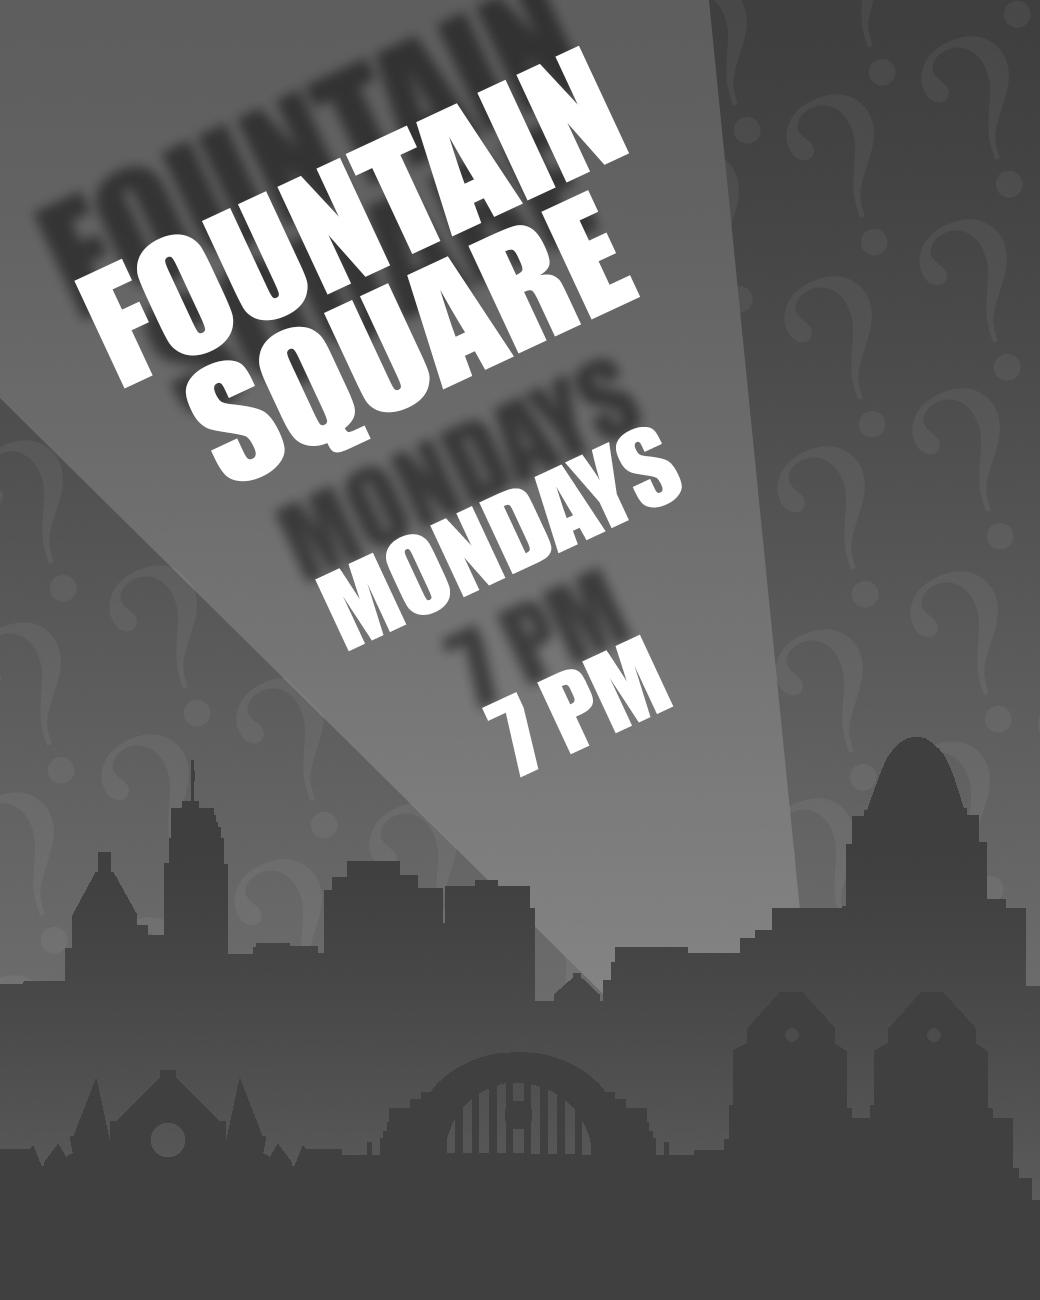 Fountain Square has trivia every Monday starting at 7 PM. ADDRESS: 520 Vine Street (45202) / Image: Phil Armstrong, Cincinnati Refined // Published: 8.30.17